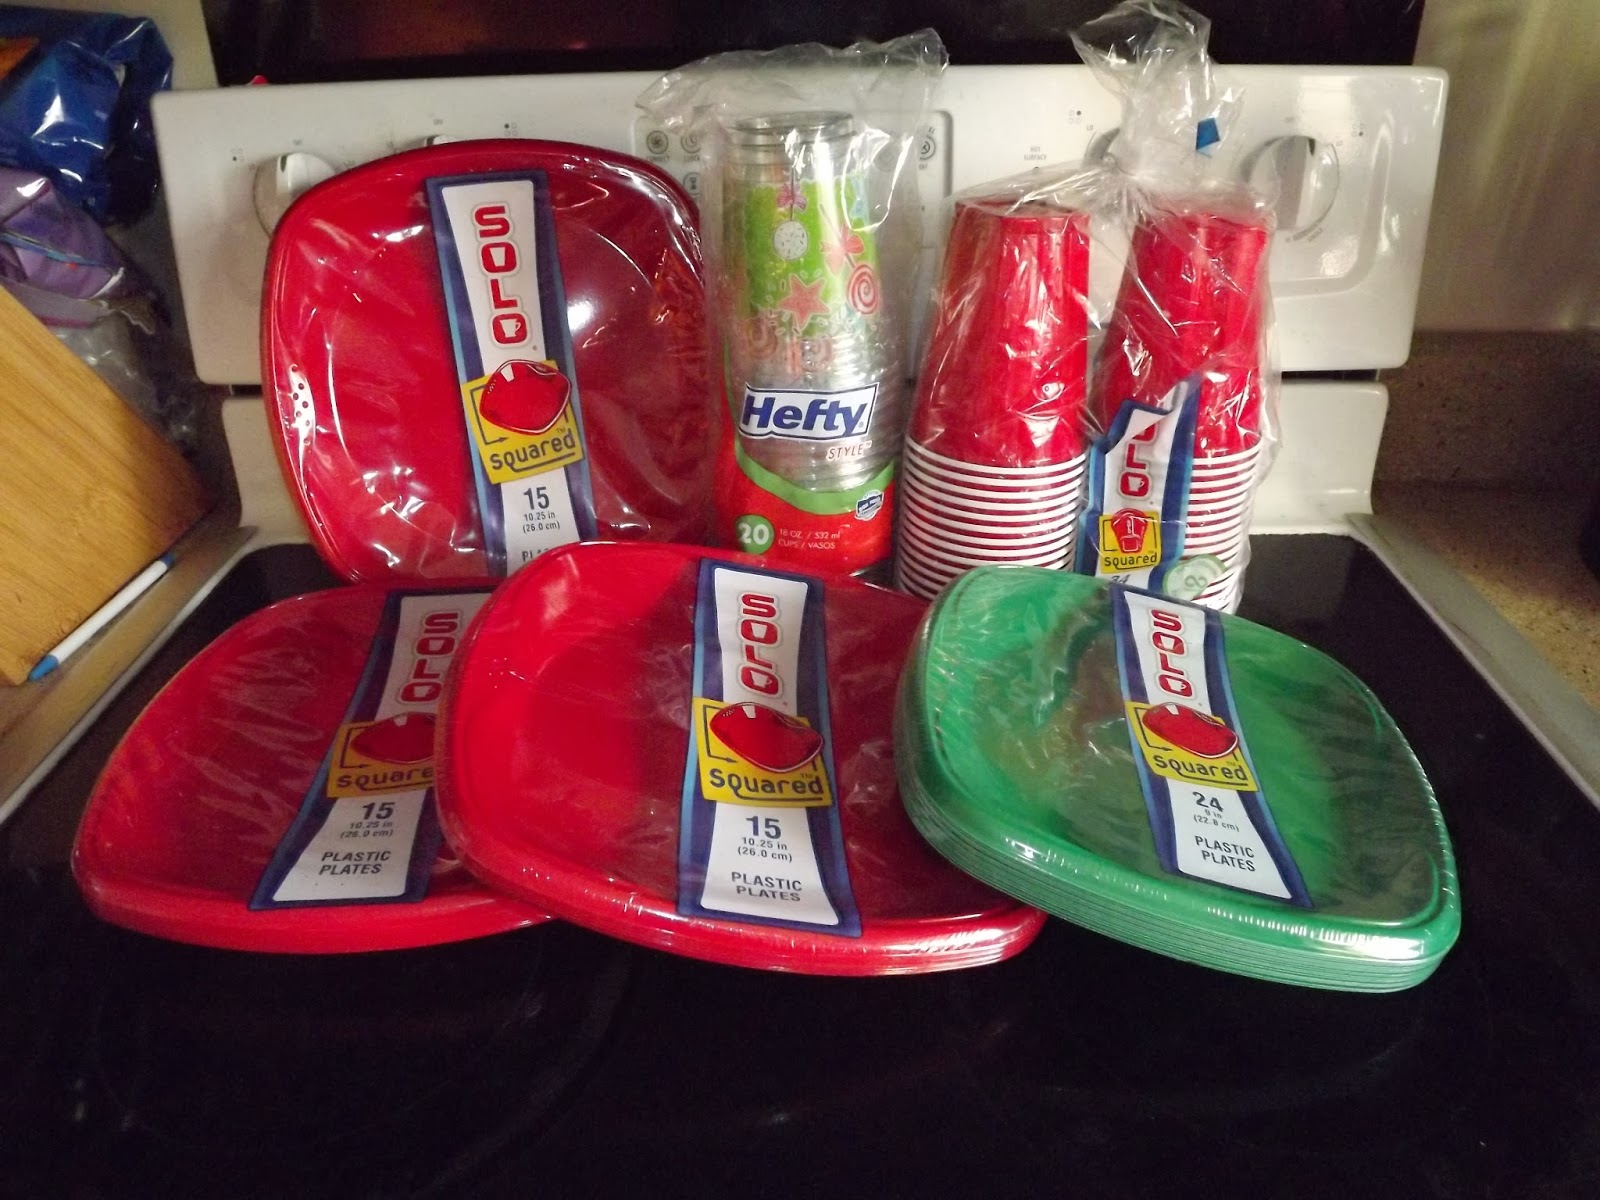 Solo Plastic Plates(50%)-$1.49 The clearance ones are the 15 pack. Hefty Plastic Cups(50%)-$1.49. Solo Plastic Cups(50%)-$1.49 The clearance package is the ... & Keeping Up With The Pruetts: December 2013